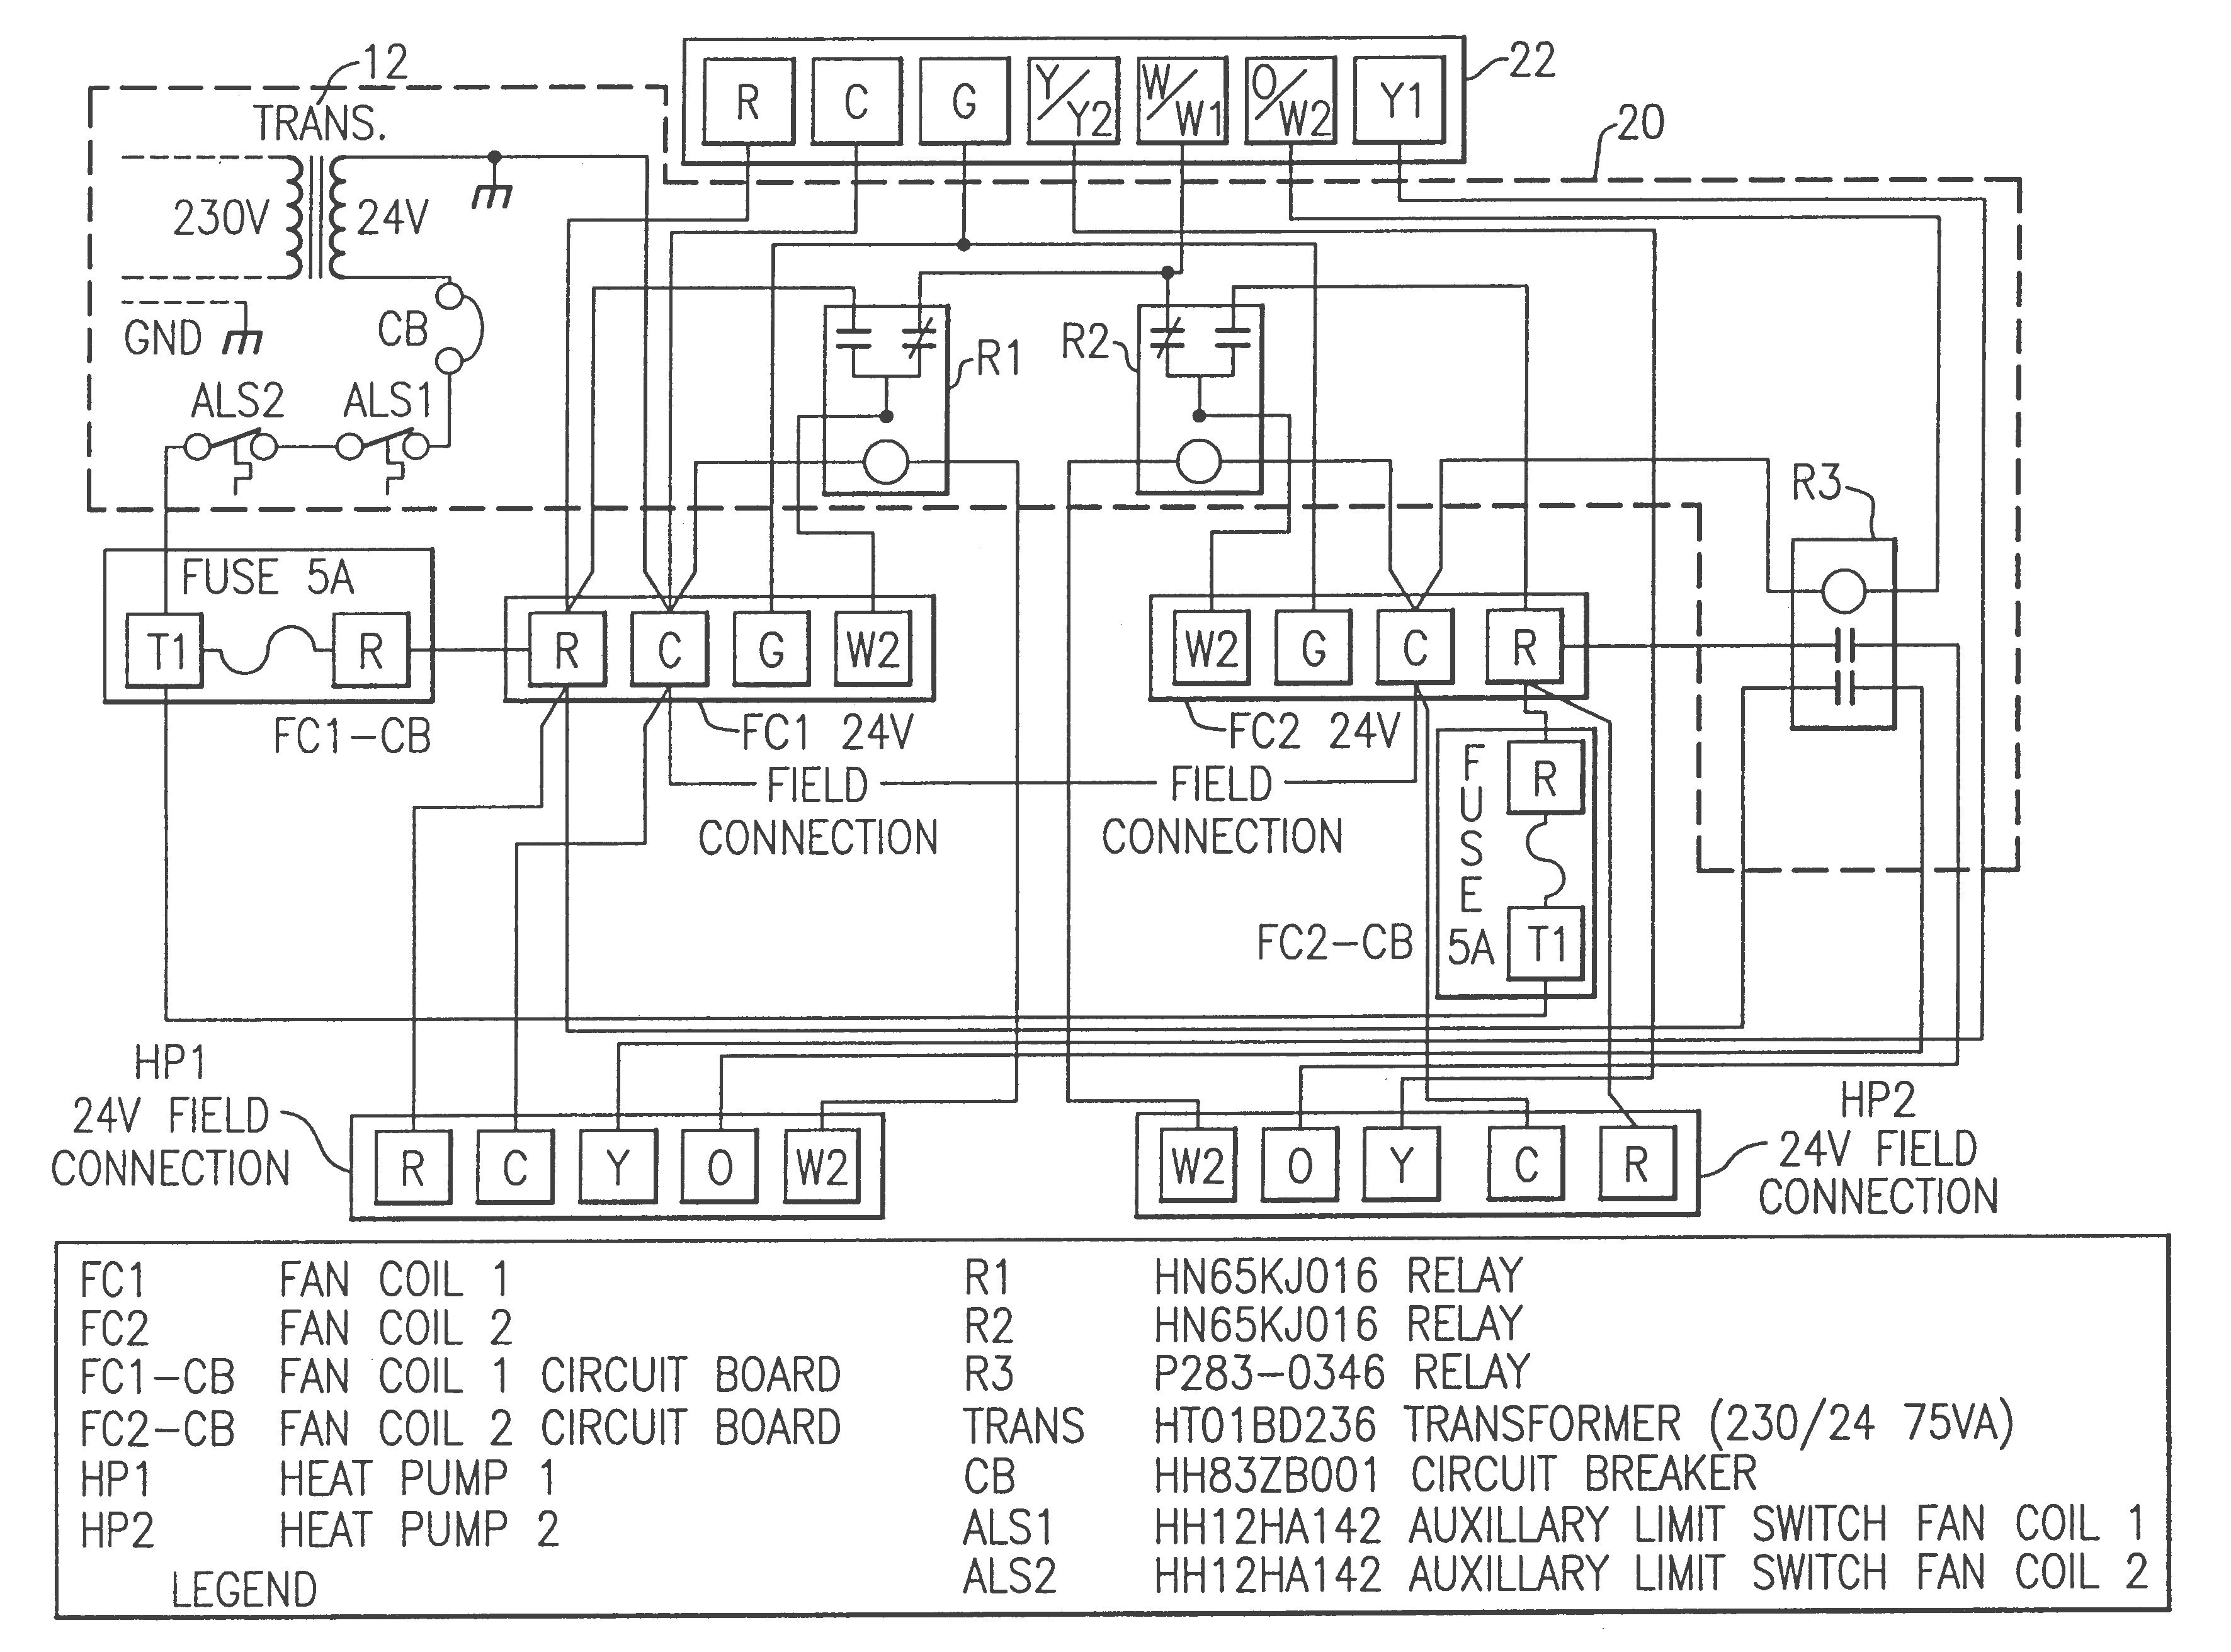 goodman package unit wiring diagram Collection-Electric Heat Strip Wiring Diagram Inspirational Package Unit Troubleshooting Free Examples Goodman 1 20-s